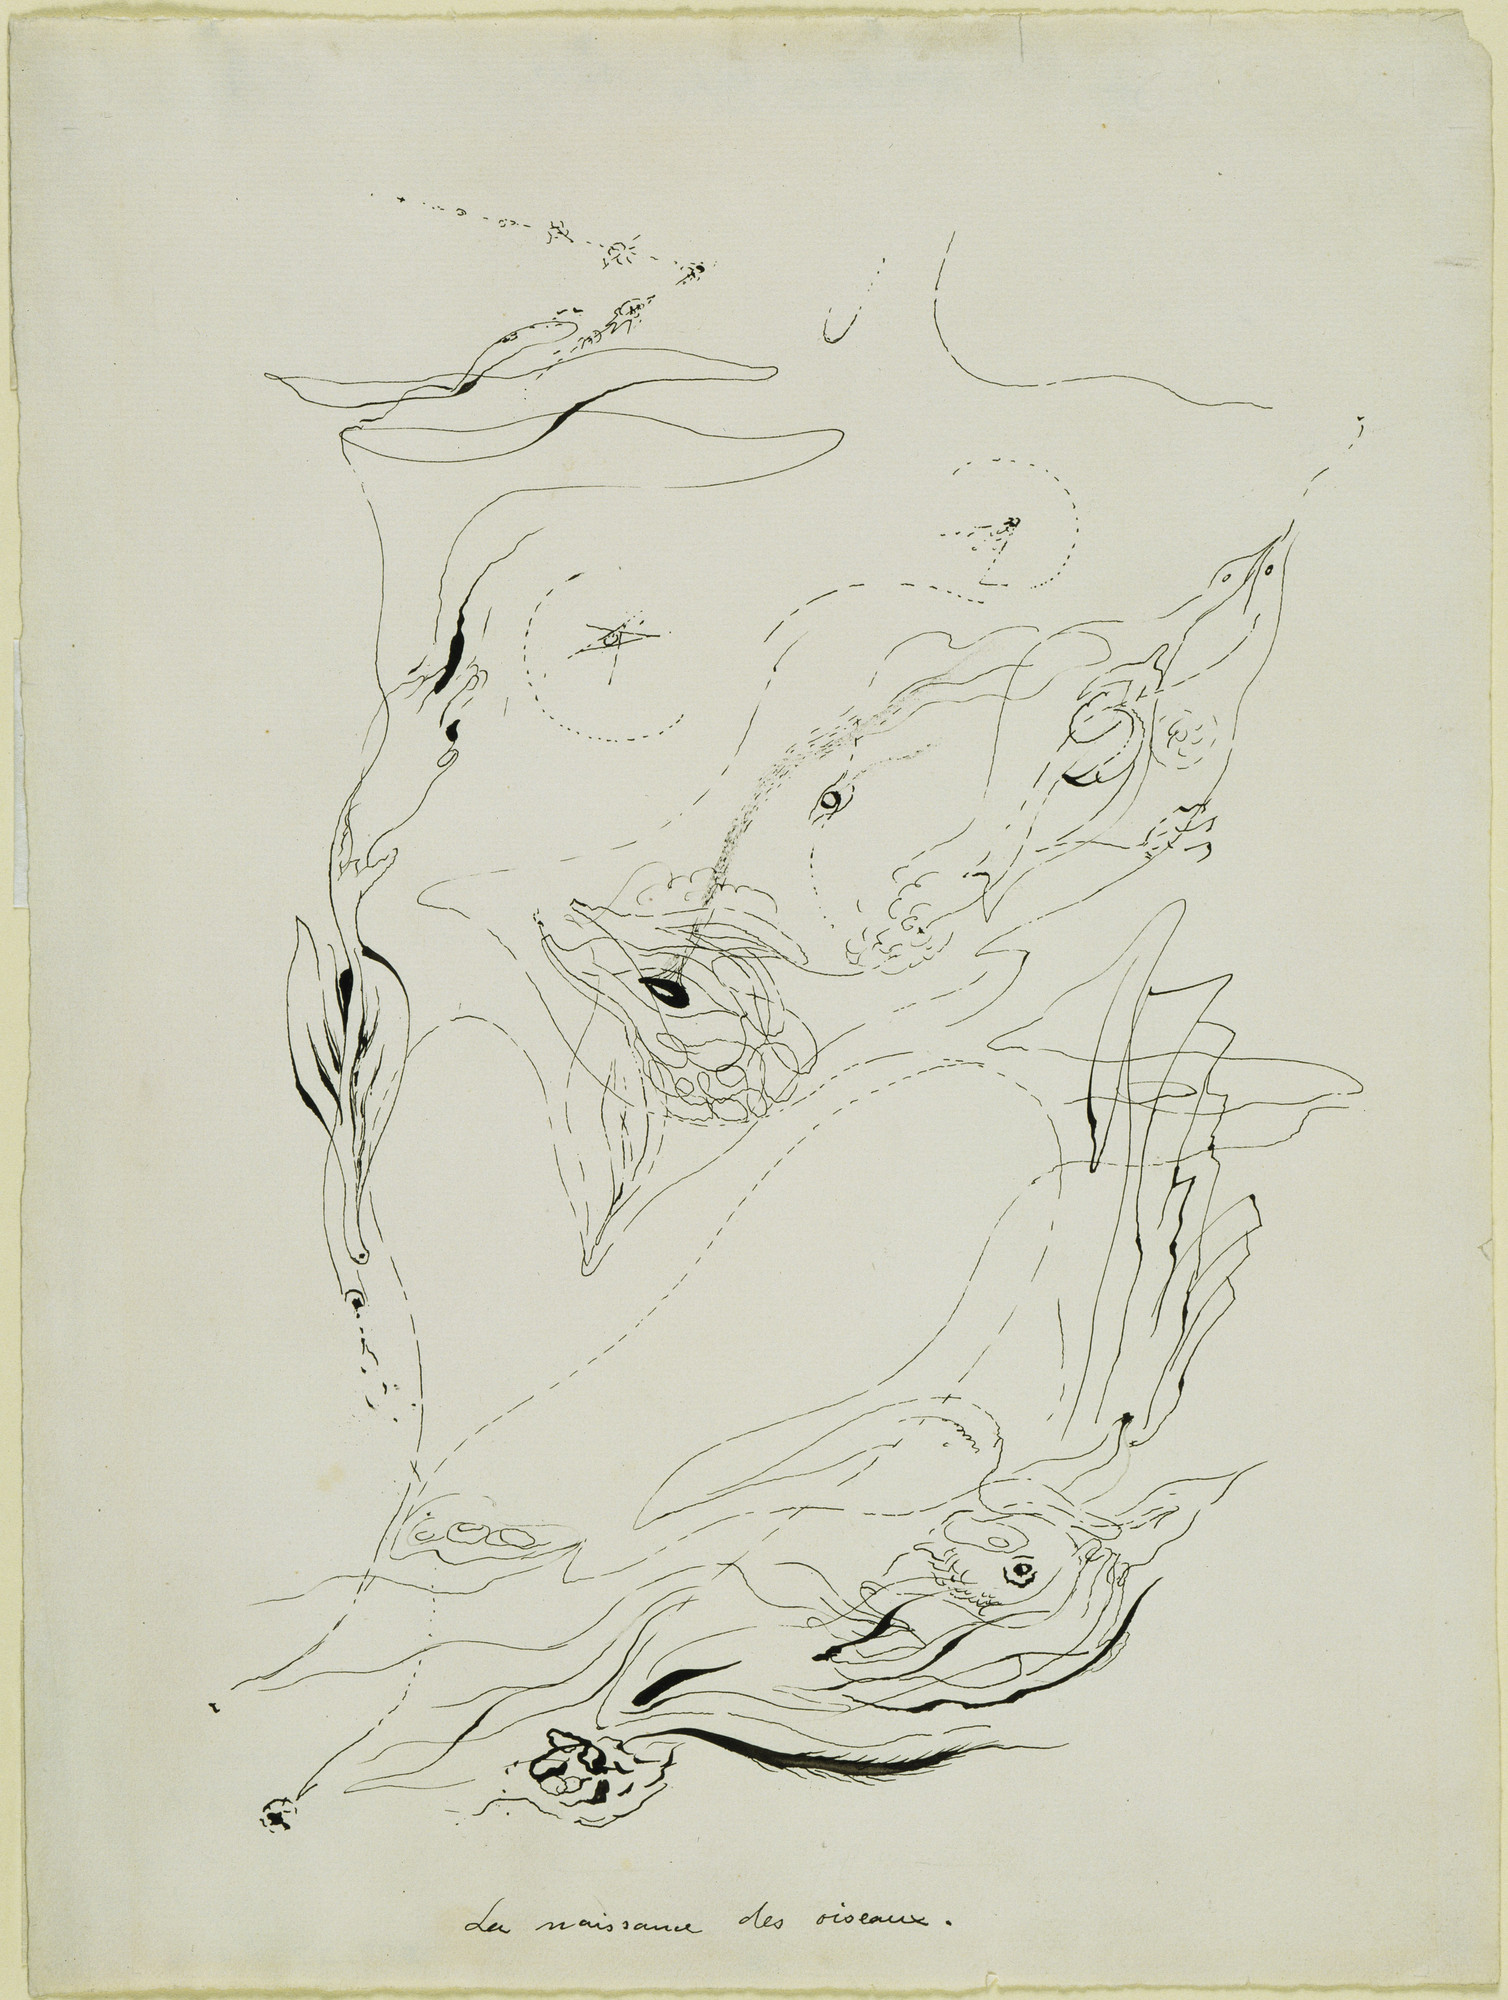 André Masson. Birth of Birds. (c. 1925)